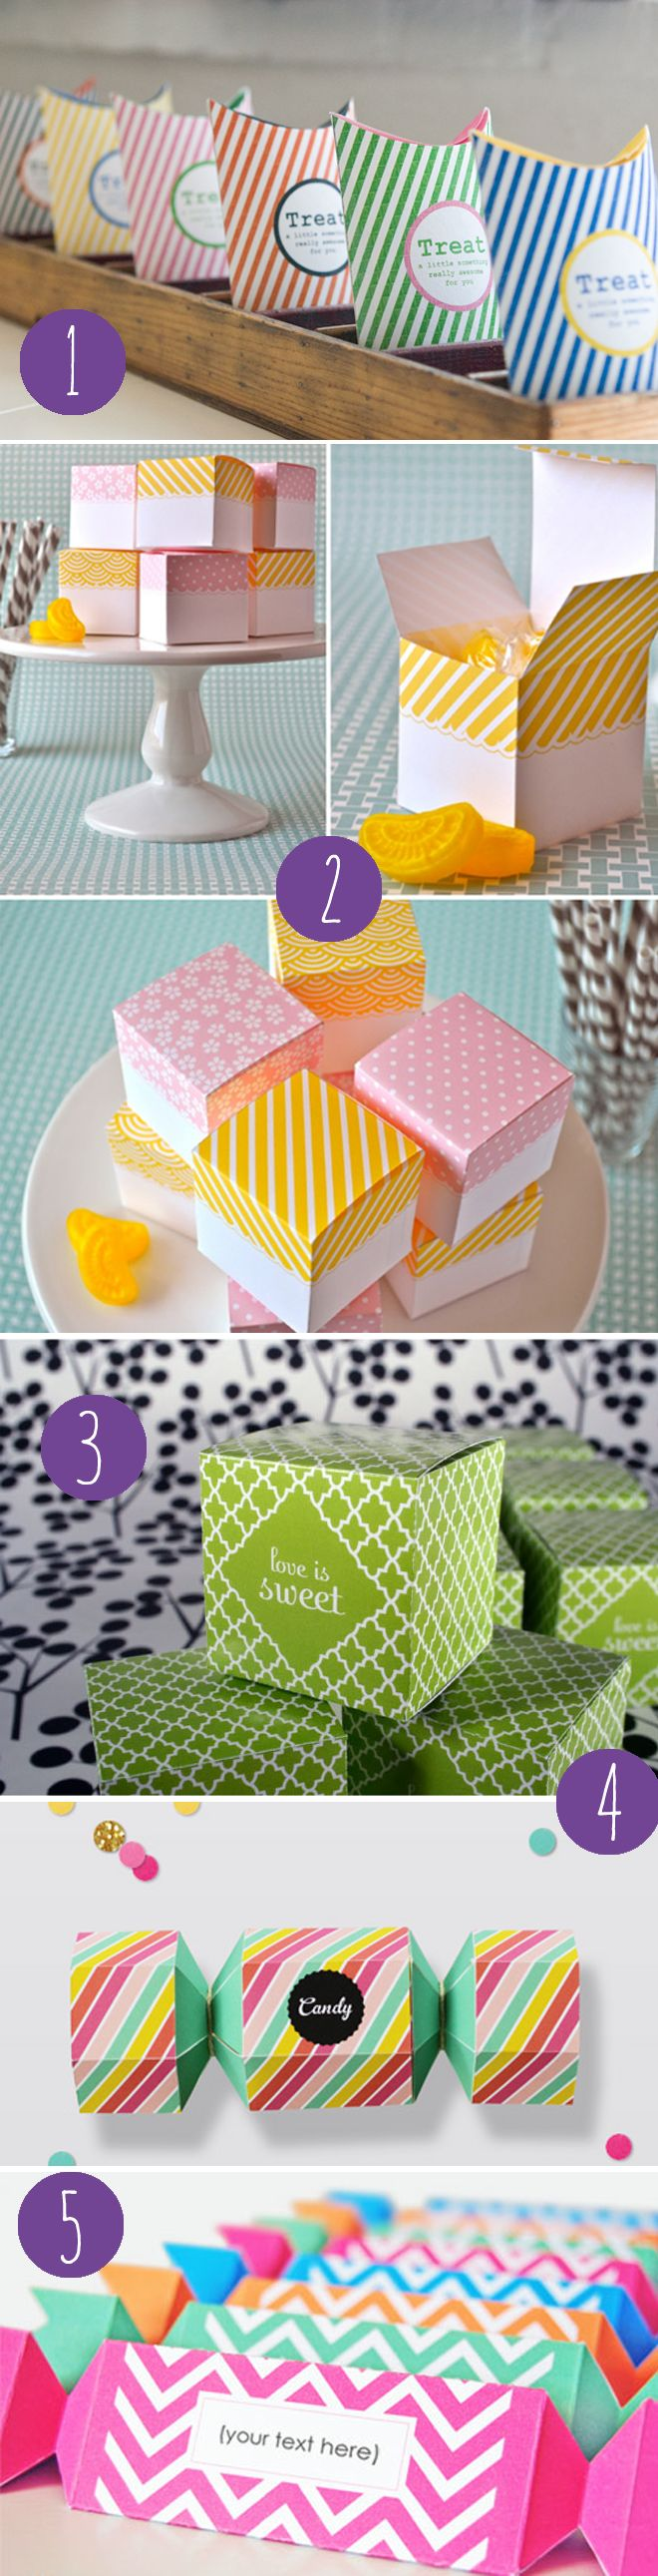 Free Favor Box Printables for Parties + more